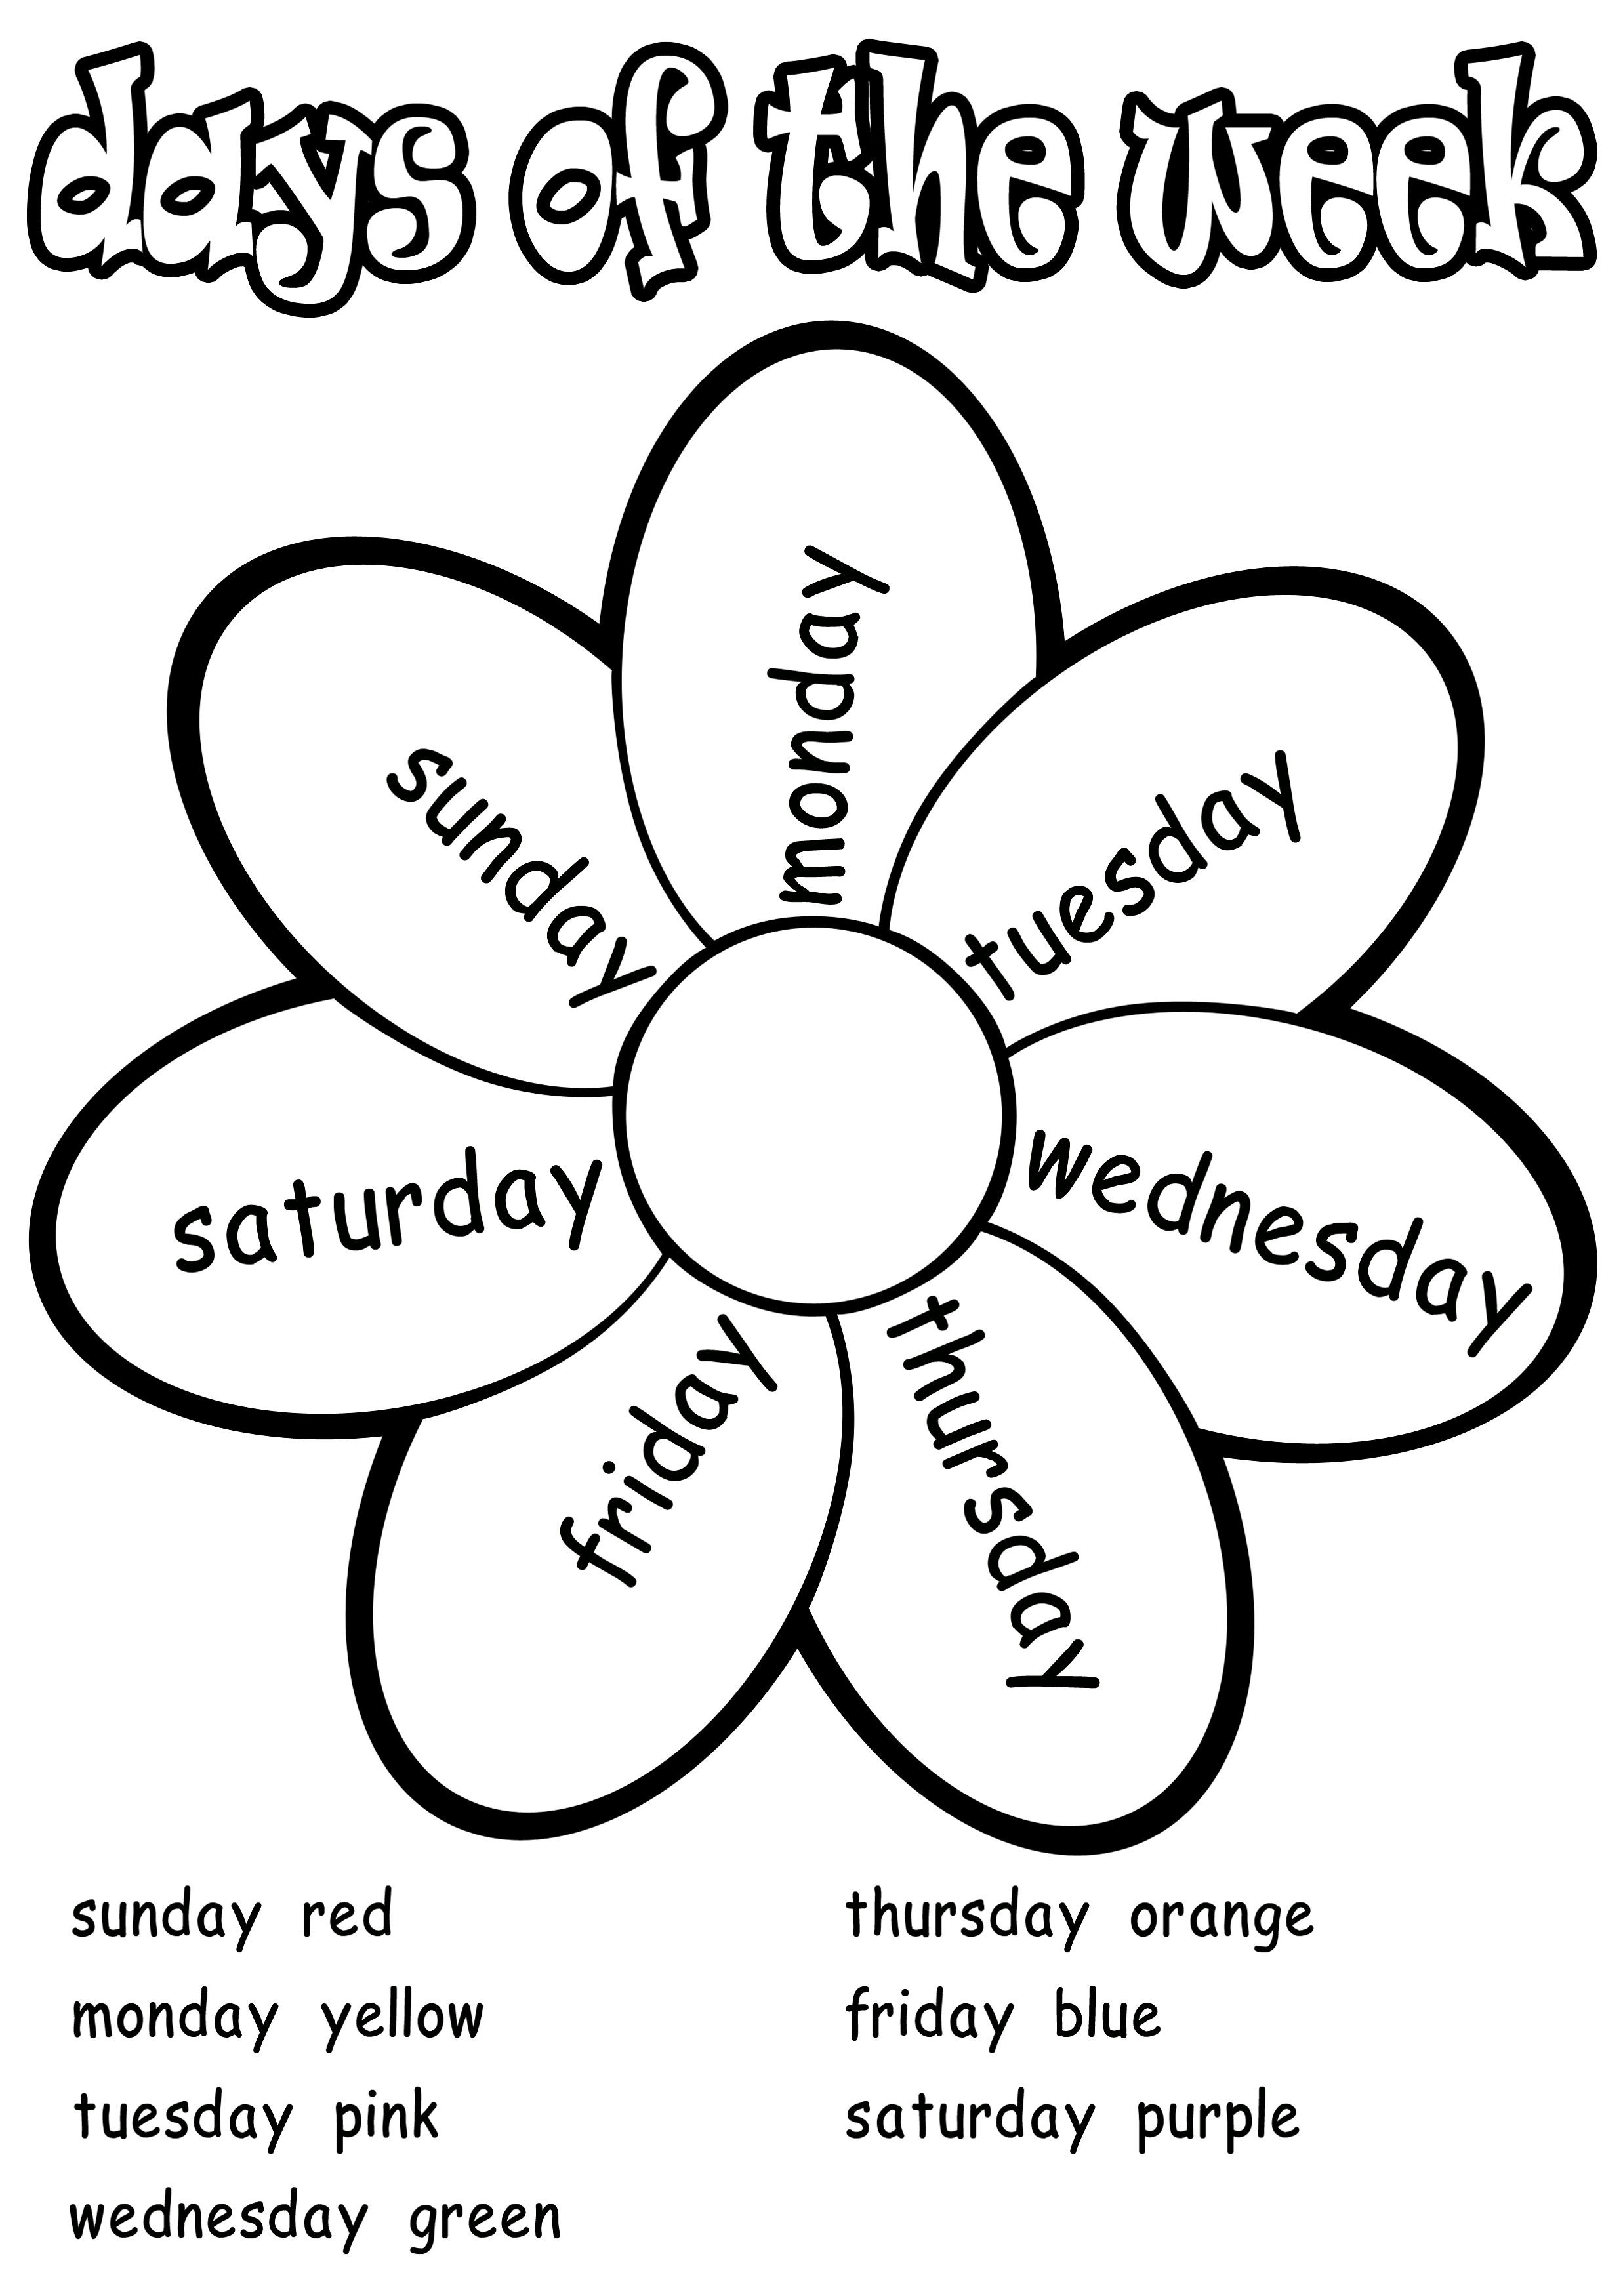 Free Days Of The Week Worksheet Coloring English Activities For Kids English Worksheets For Kids English Lessons For Kids [ 3500 x 2474 Pixel ]